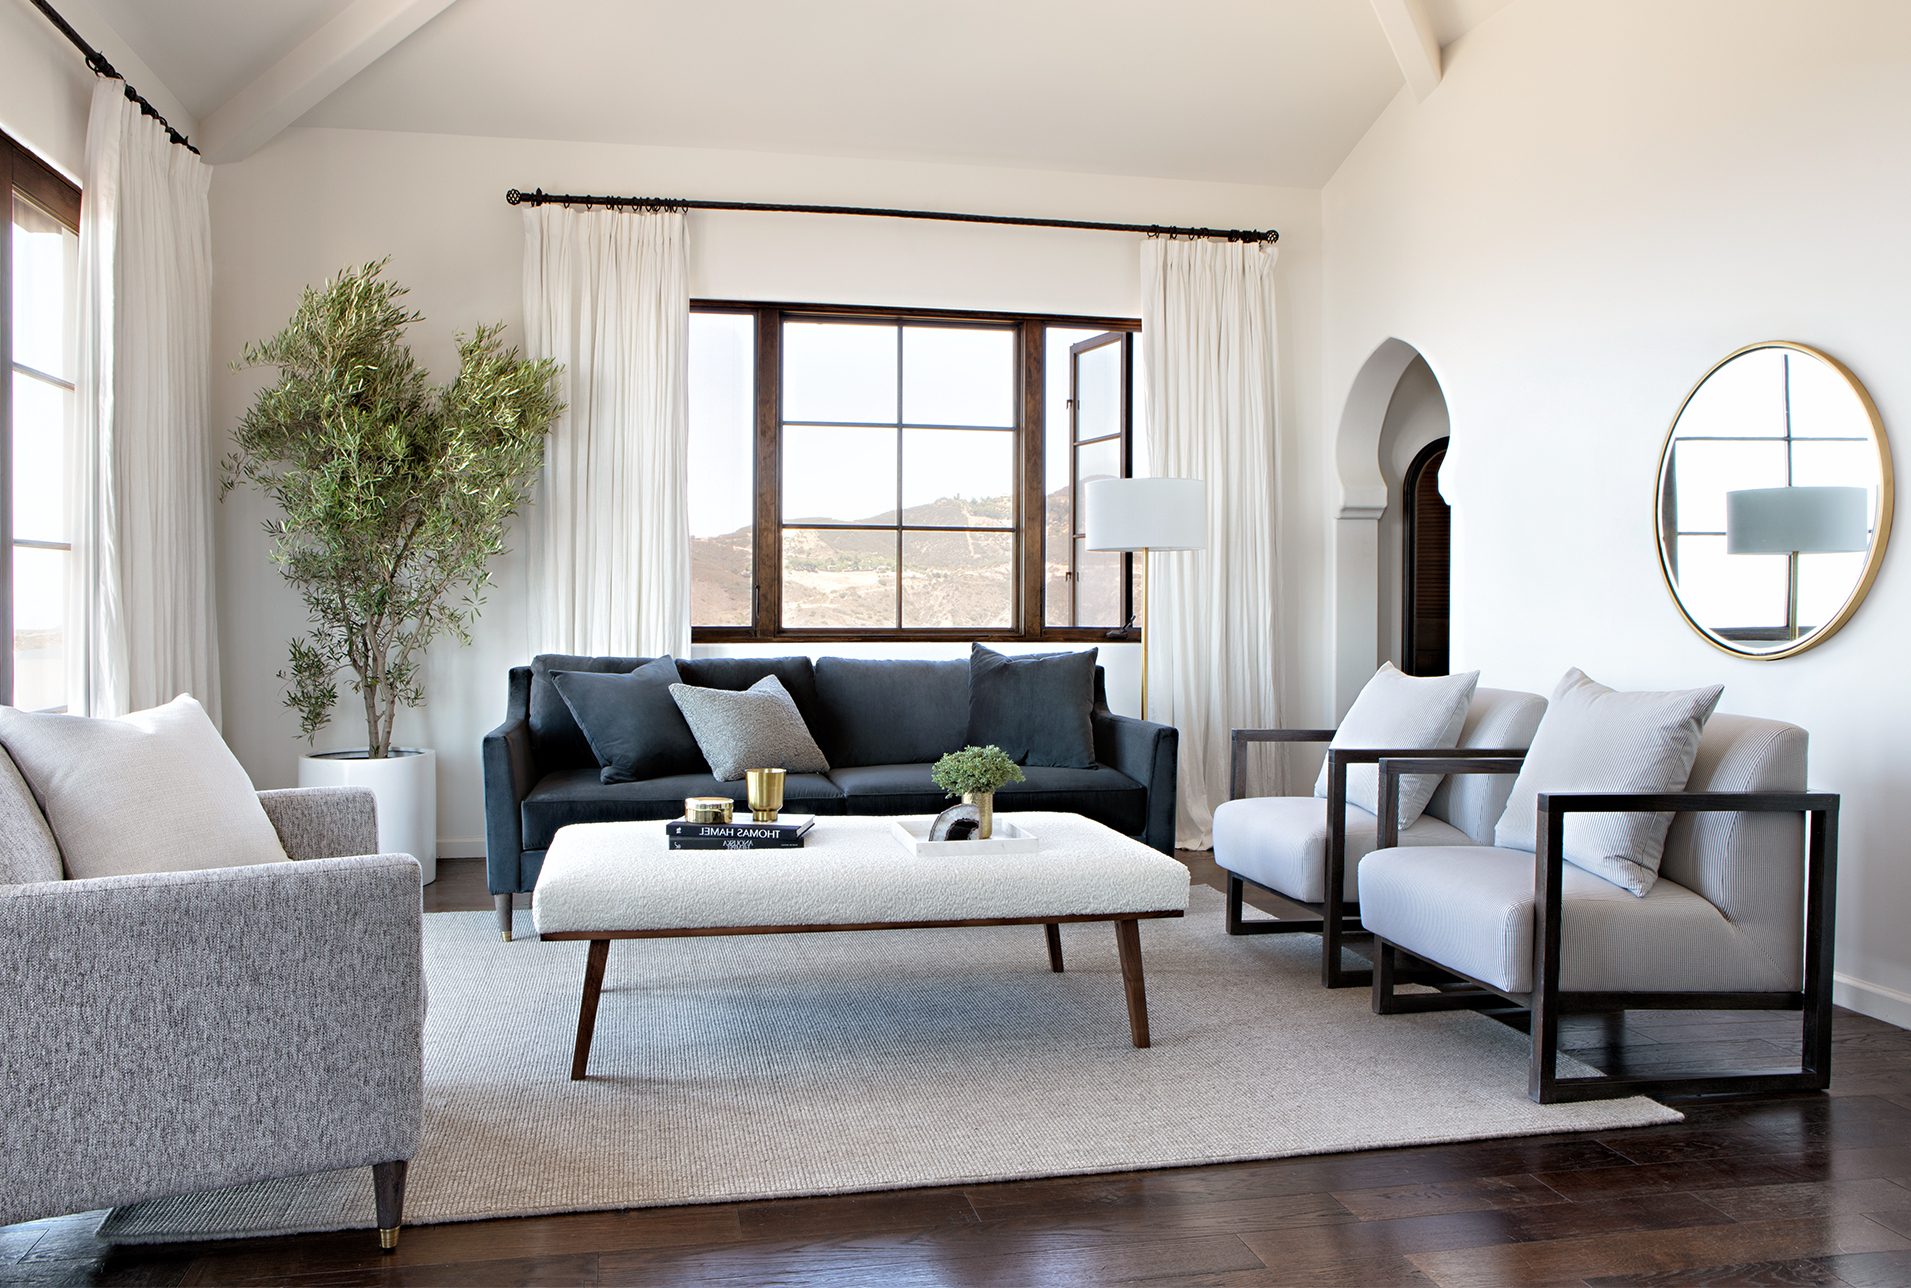 Ames Arm Sofa Chairs By Nate Berkus And Jeremiah Brent Regarding Popular Ames Arm Chairnate Berkus And Jeremiah Brent (View 2 of 20)